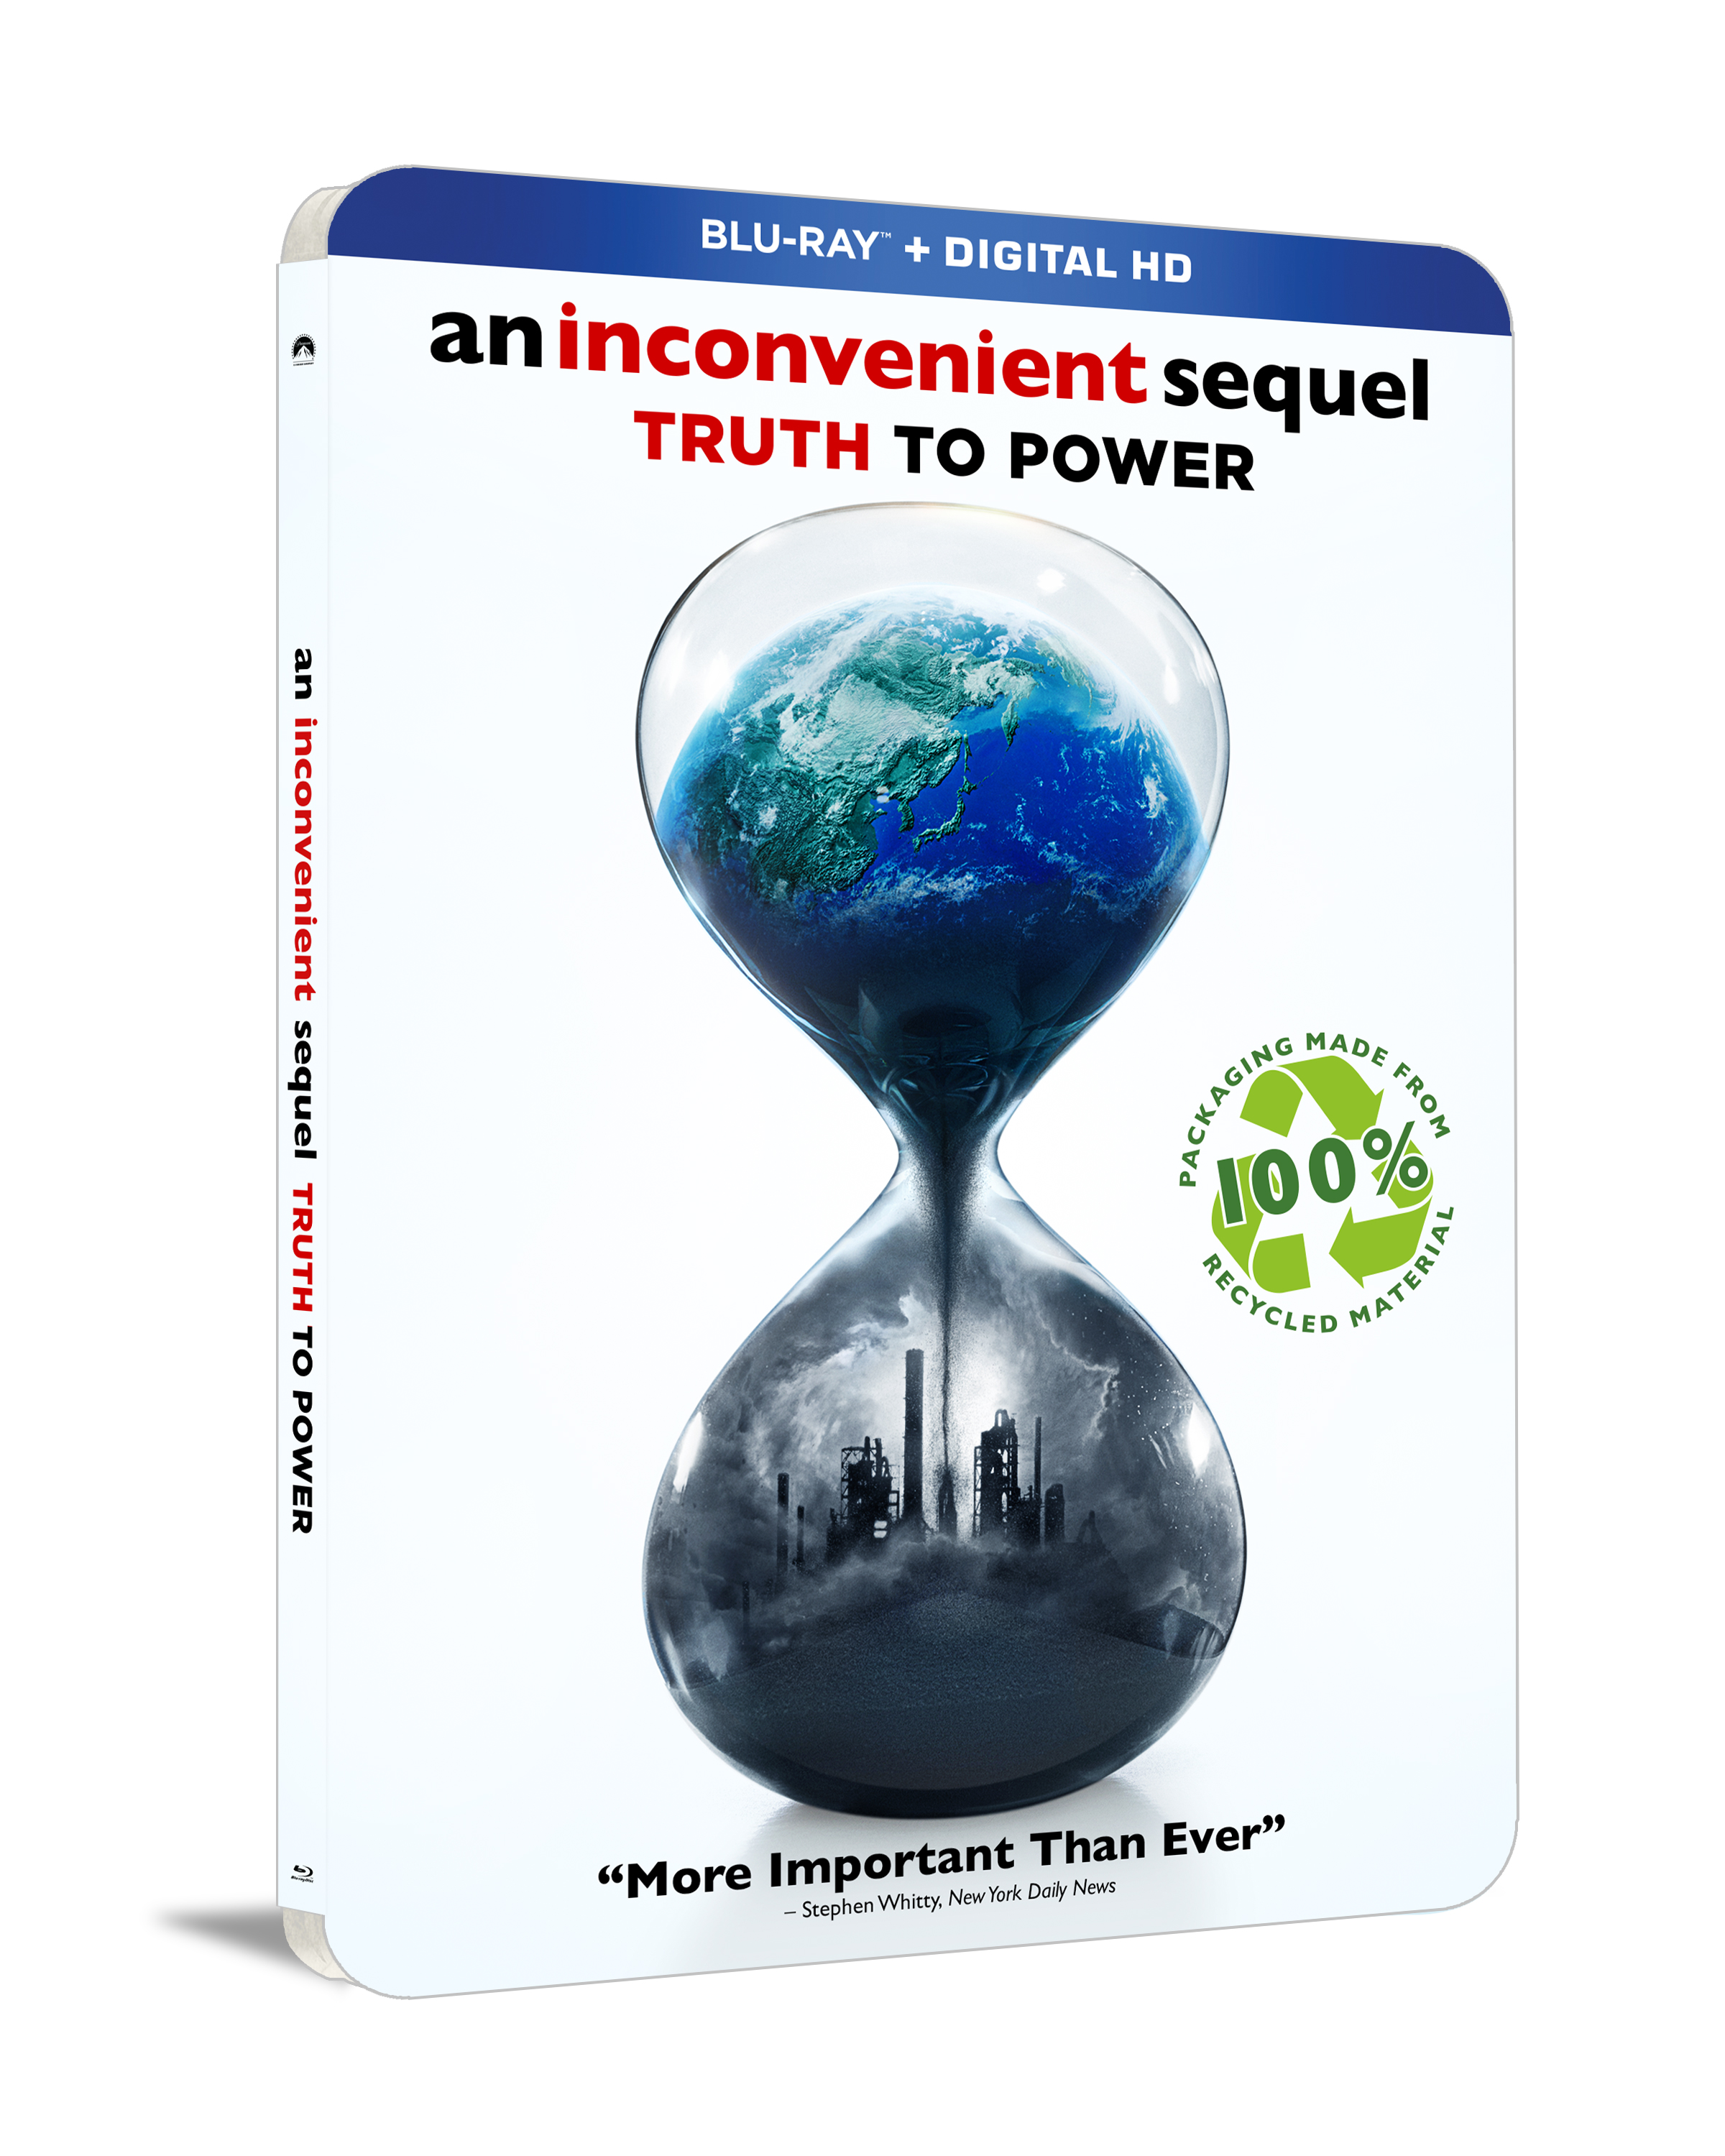 AN INCONVENIENT SEQUEL: TRUTH TO POWER Blu-ray